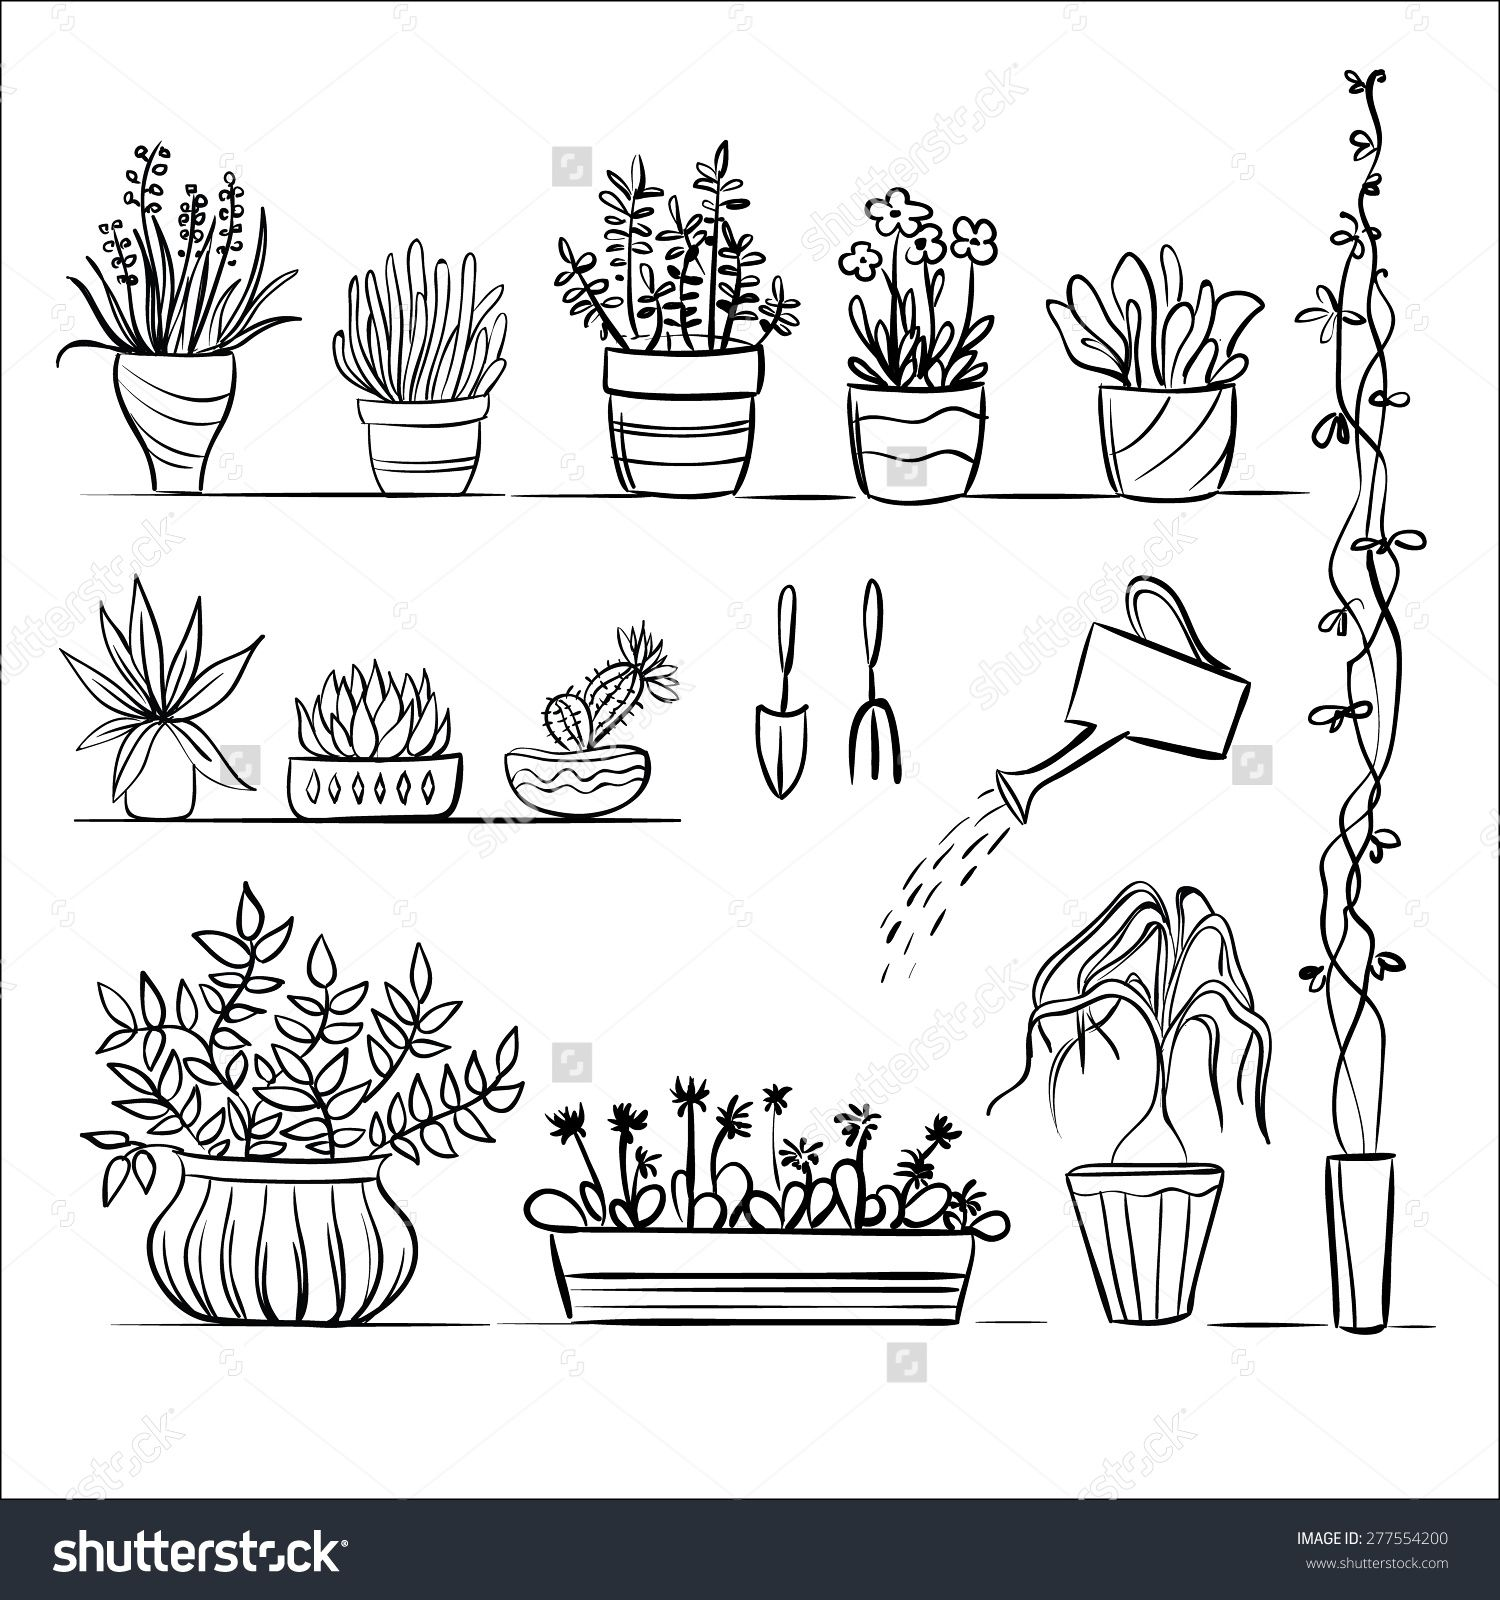 Pot plants and tools sketch. Hand drawing set, gardening ...